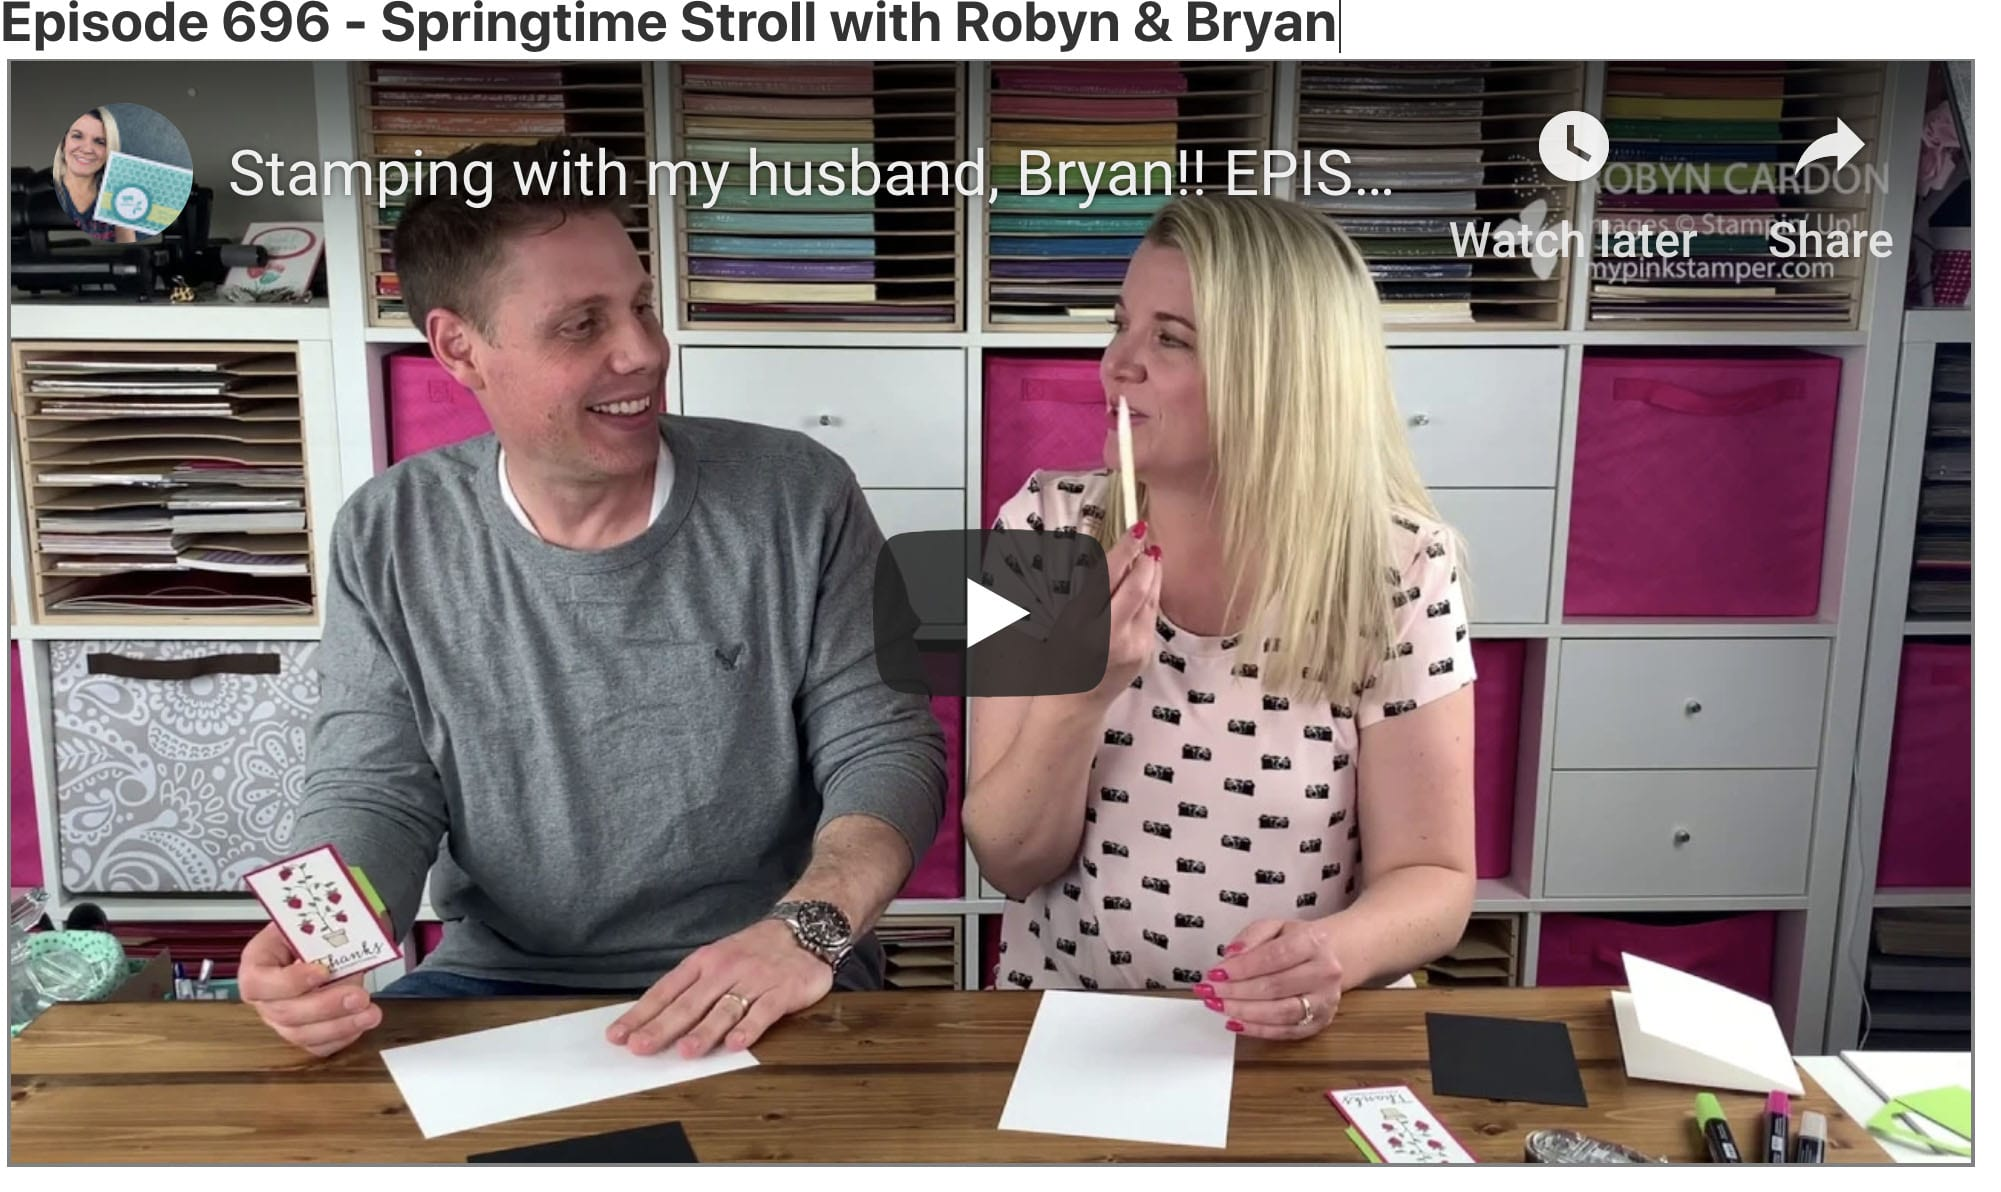 {VIDEO}Episode 696 – Stamping with Robyn & Bryan – Stampin' Up! Springtime Stroll